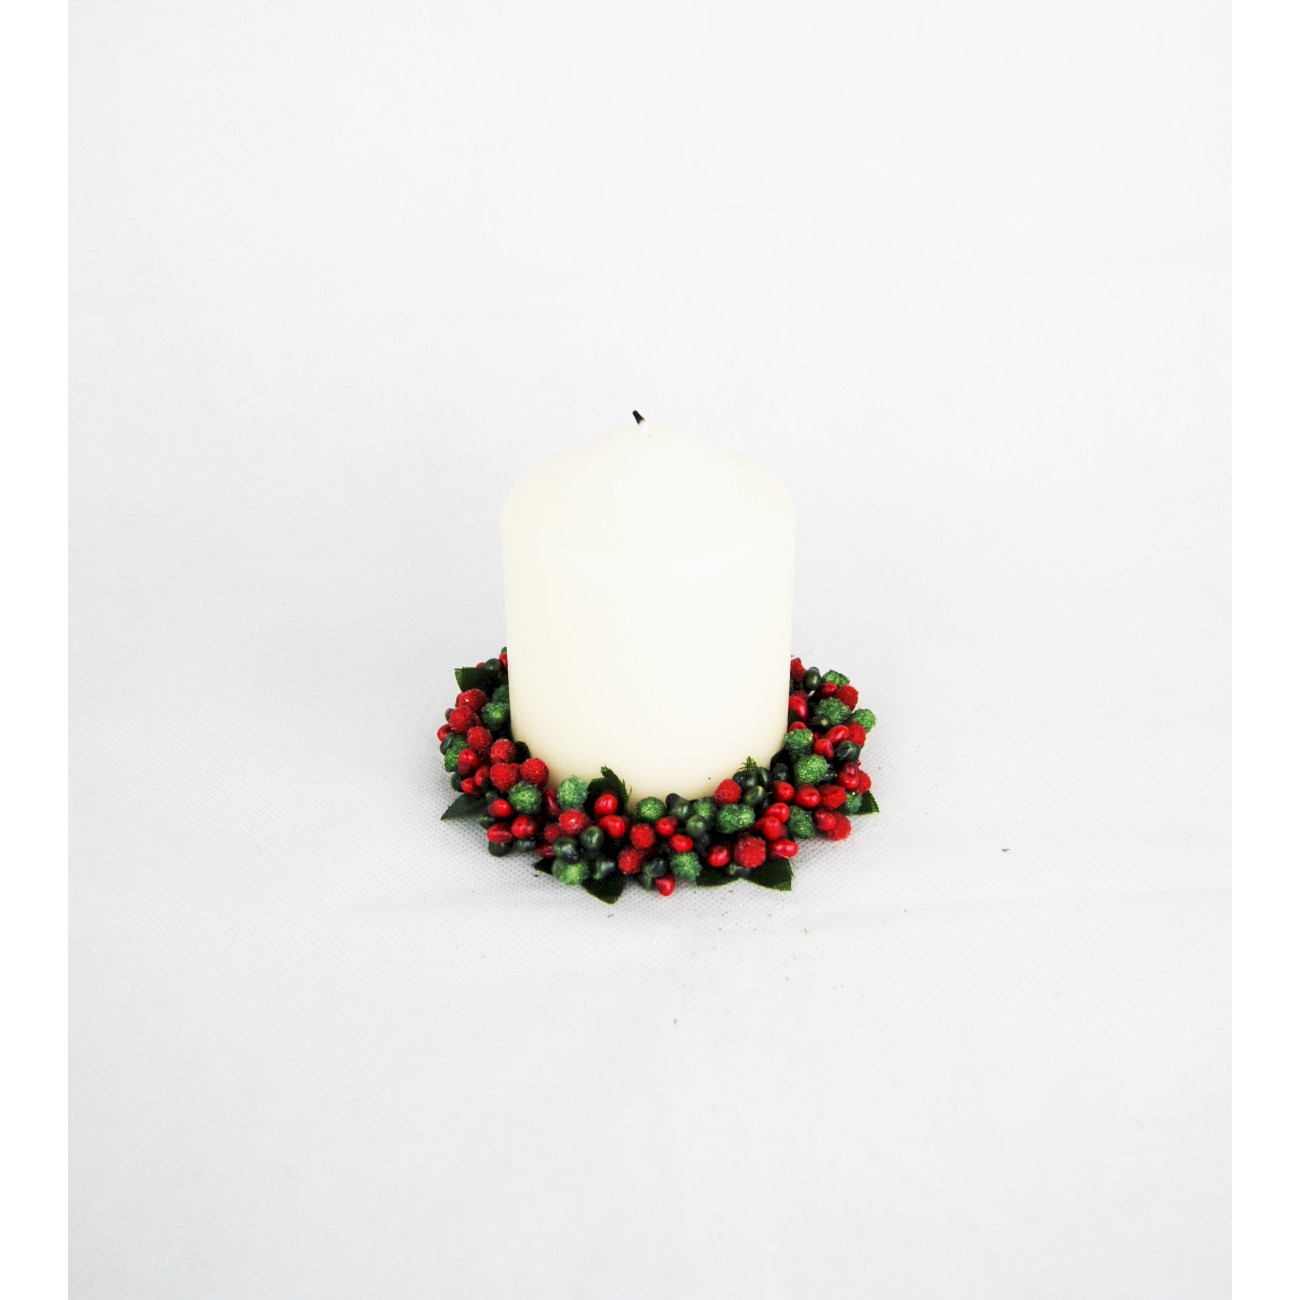 CANDLE RING 7cm RED/GREEN BERRYBUD